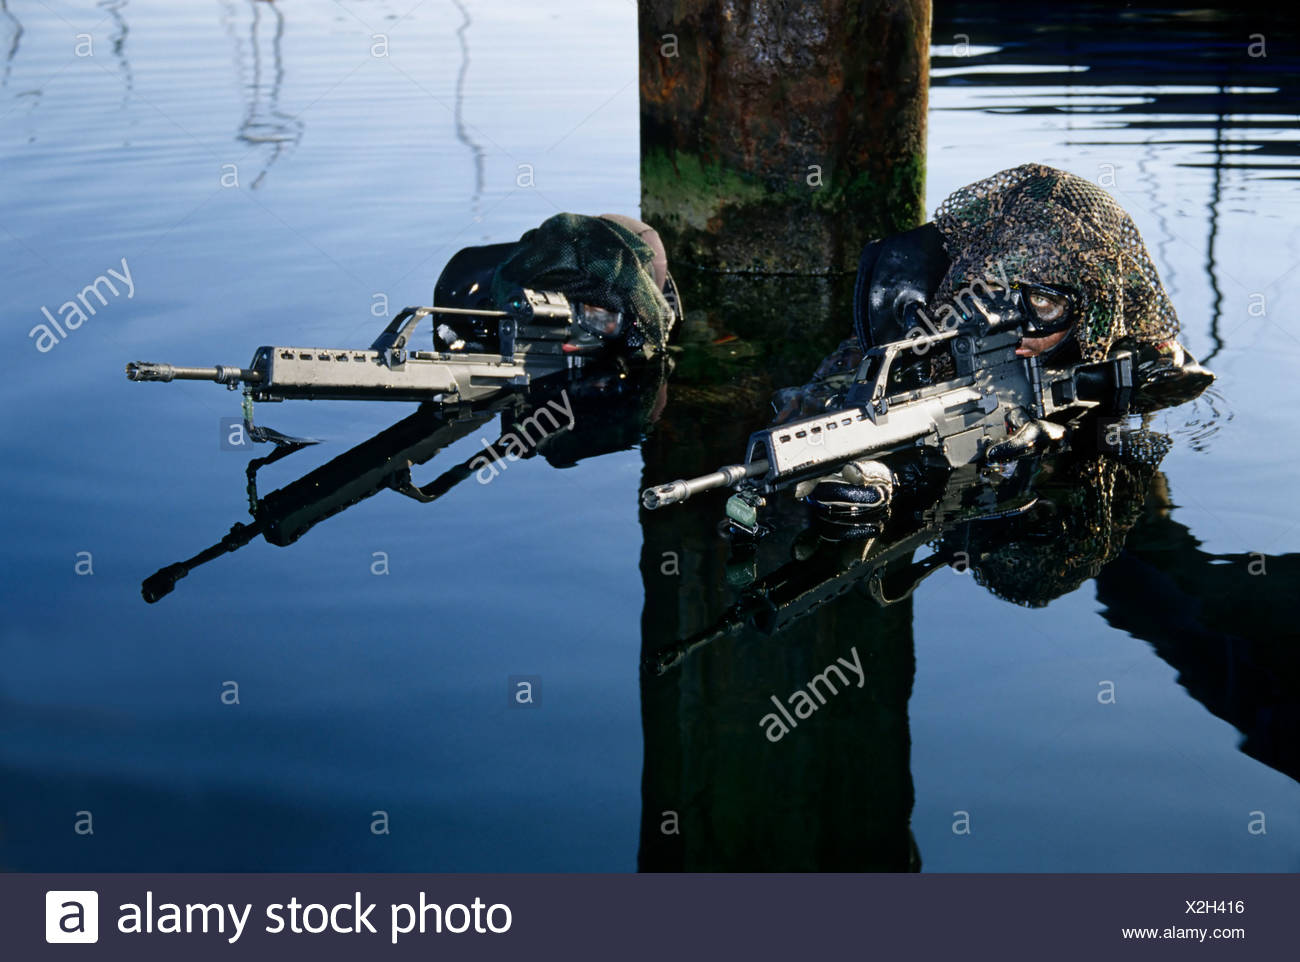 Soldiers of the special forces unit 'Kampfschwimmer' of the Deutsche Marine Germany Navy in simulation of a harbour attack, wea - Stock Image